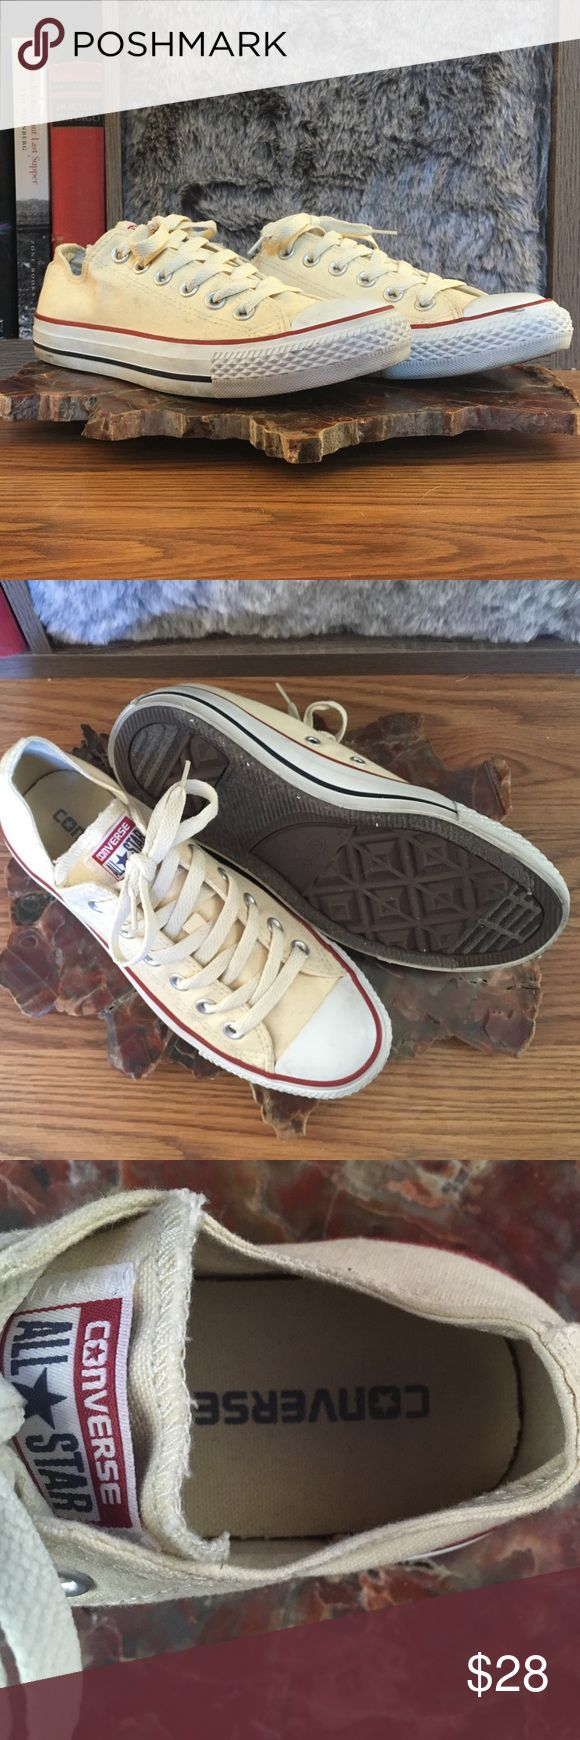 Off-White Low Top Converse Worn twice, these classic babes have a couple smudges on the rubber and a little dirt on the canvas, but a little character never hurt Chucks! Men's size 5/Women's size 7. Converse Shoes Sneakers